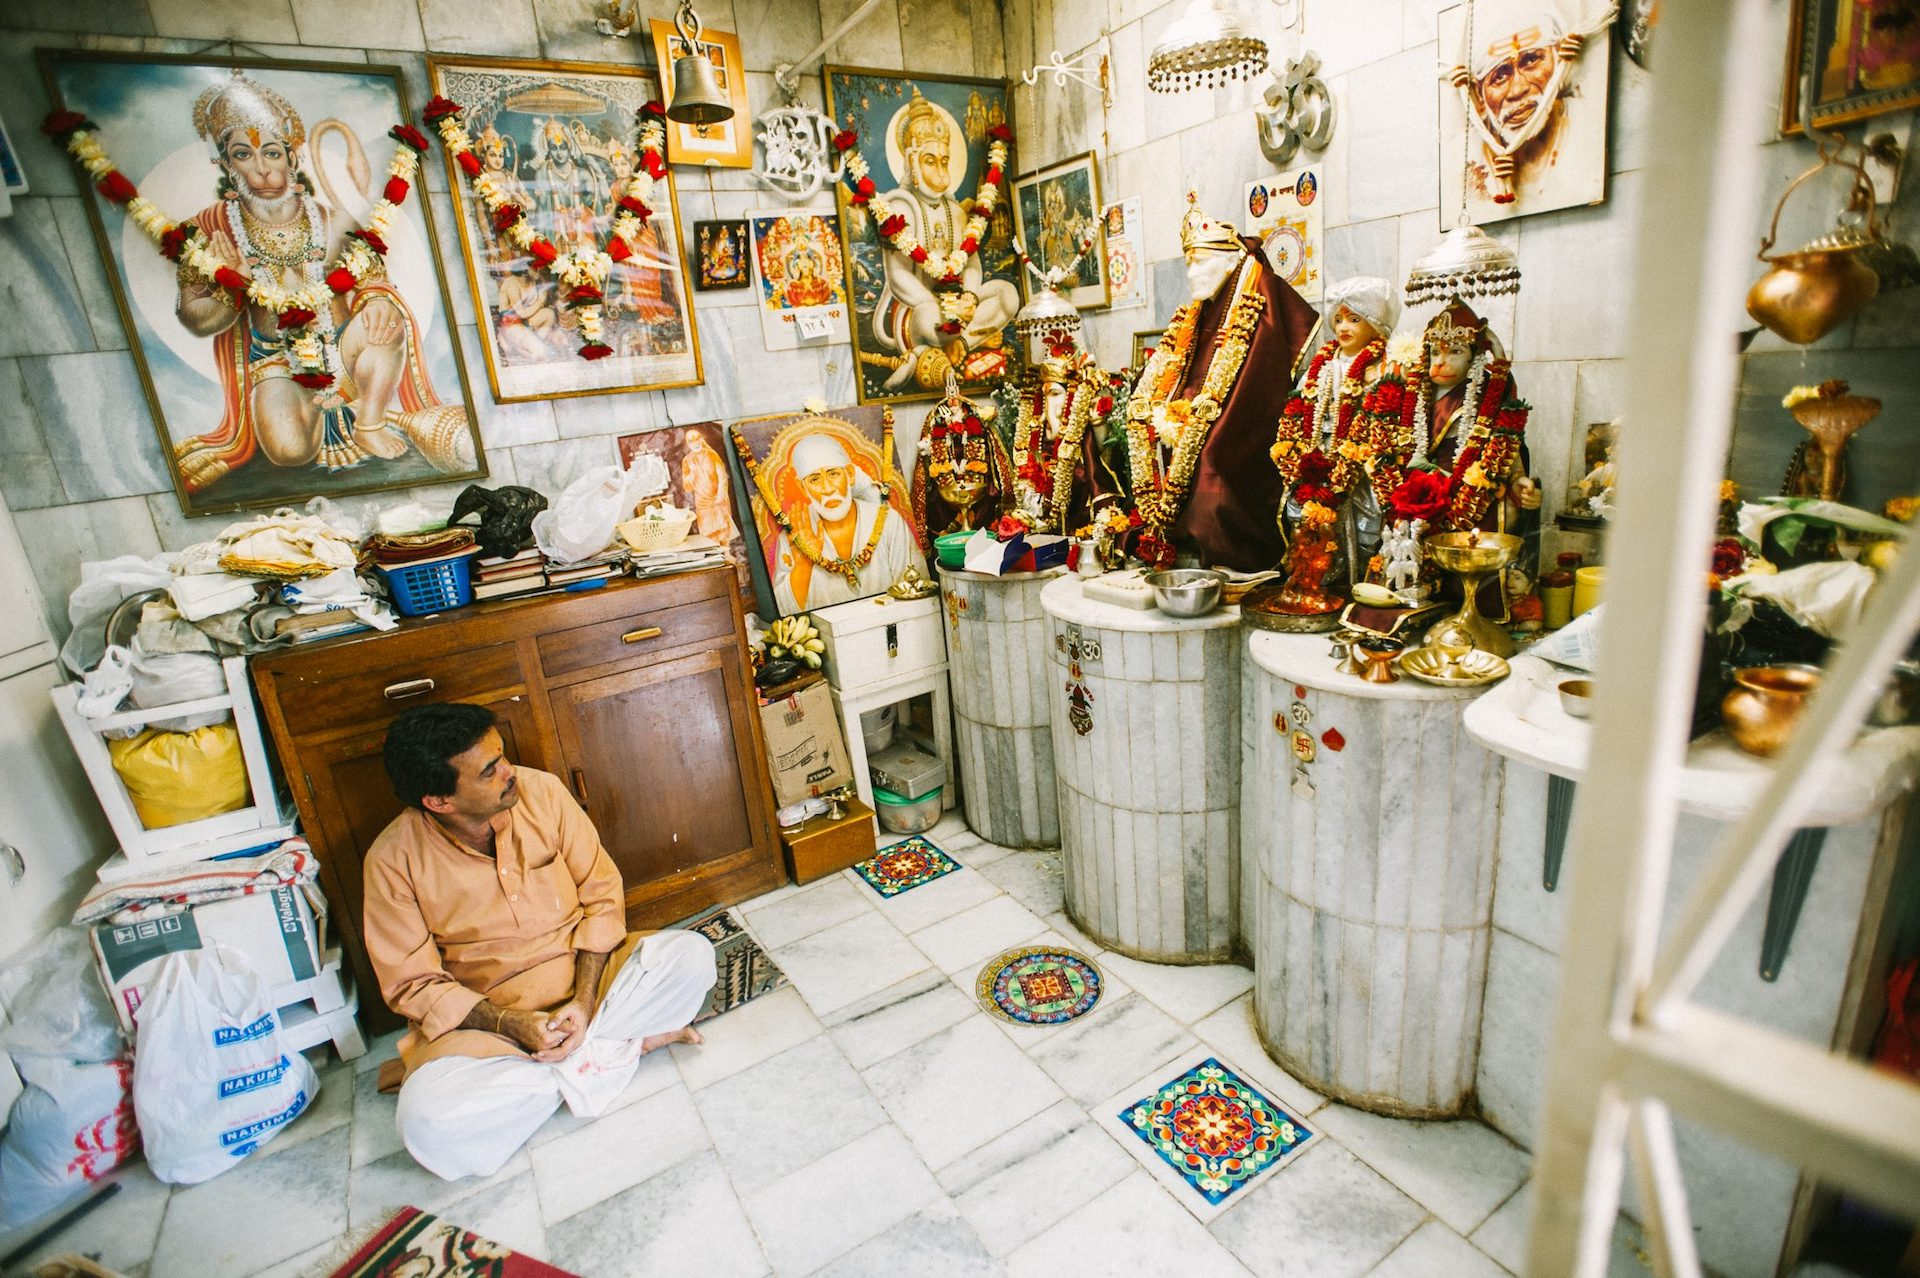 A Hindu sits in his idol shop in Kenya. He sells images of Hindu gods to Nairobi's Hindu population of 600,000 people. Photo from IMB Photo Library.